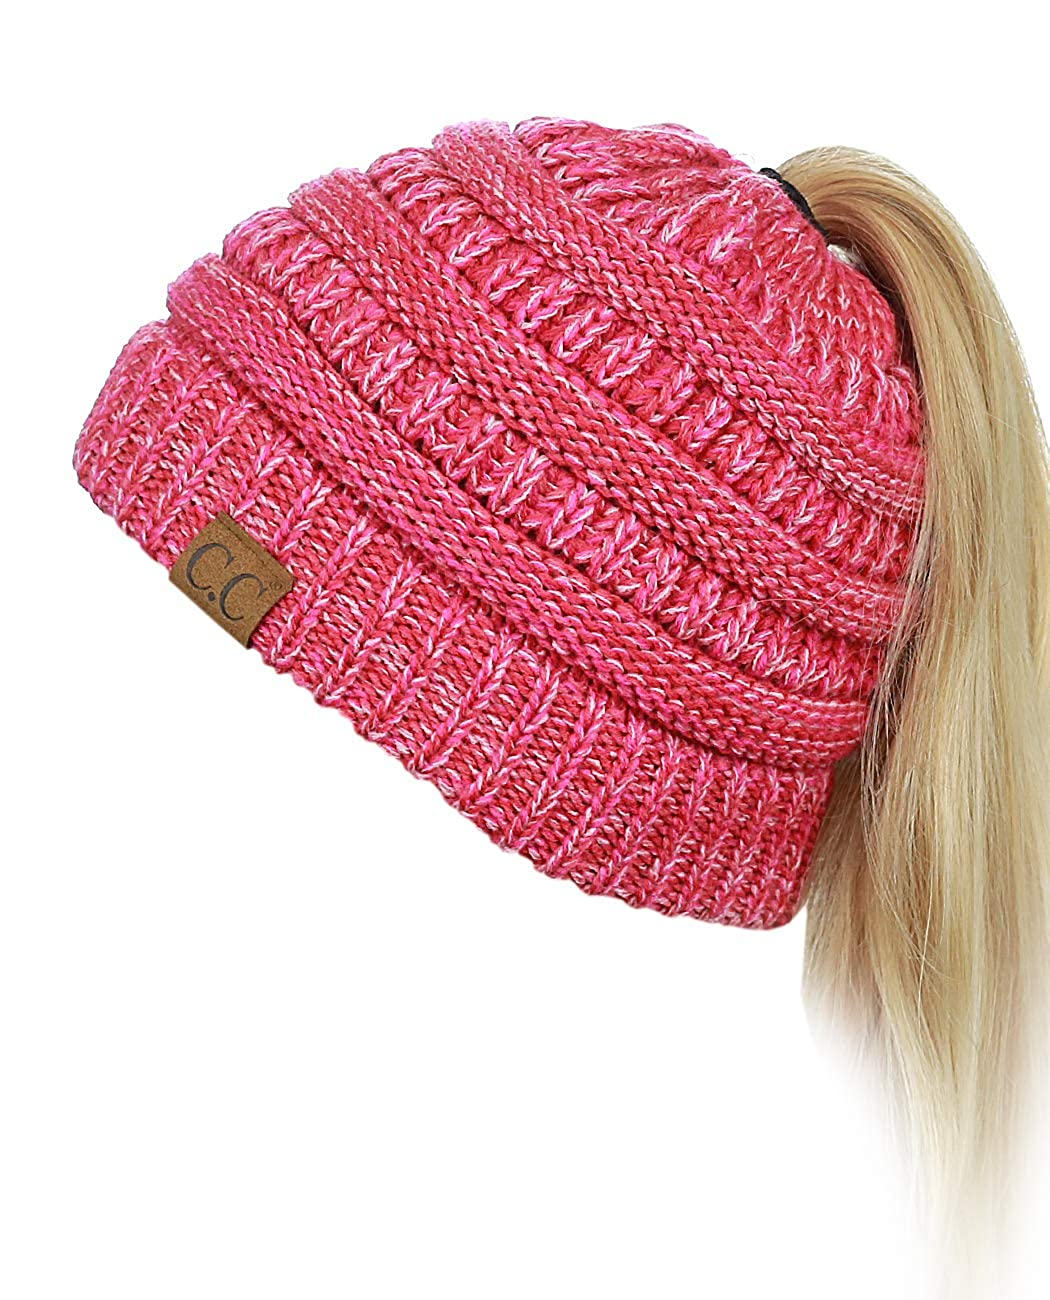 98463d30bbc C.C BeanieTail Soft Stretch Cable Knit Messy High Bun Ponytail Beanie Hat